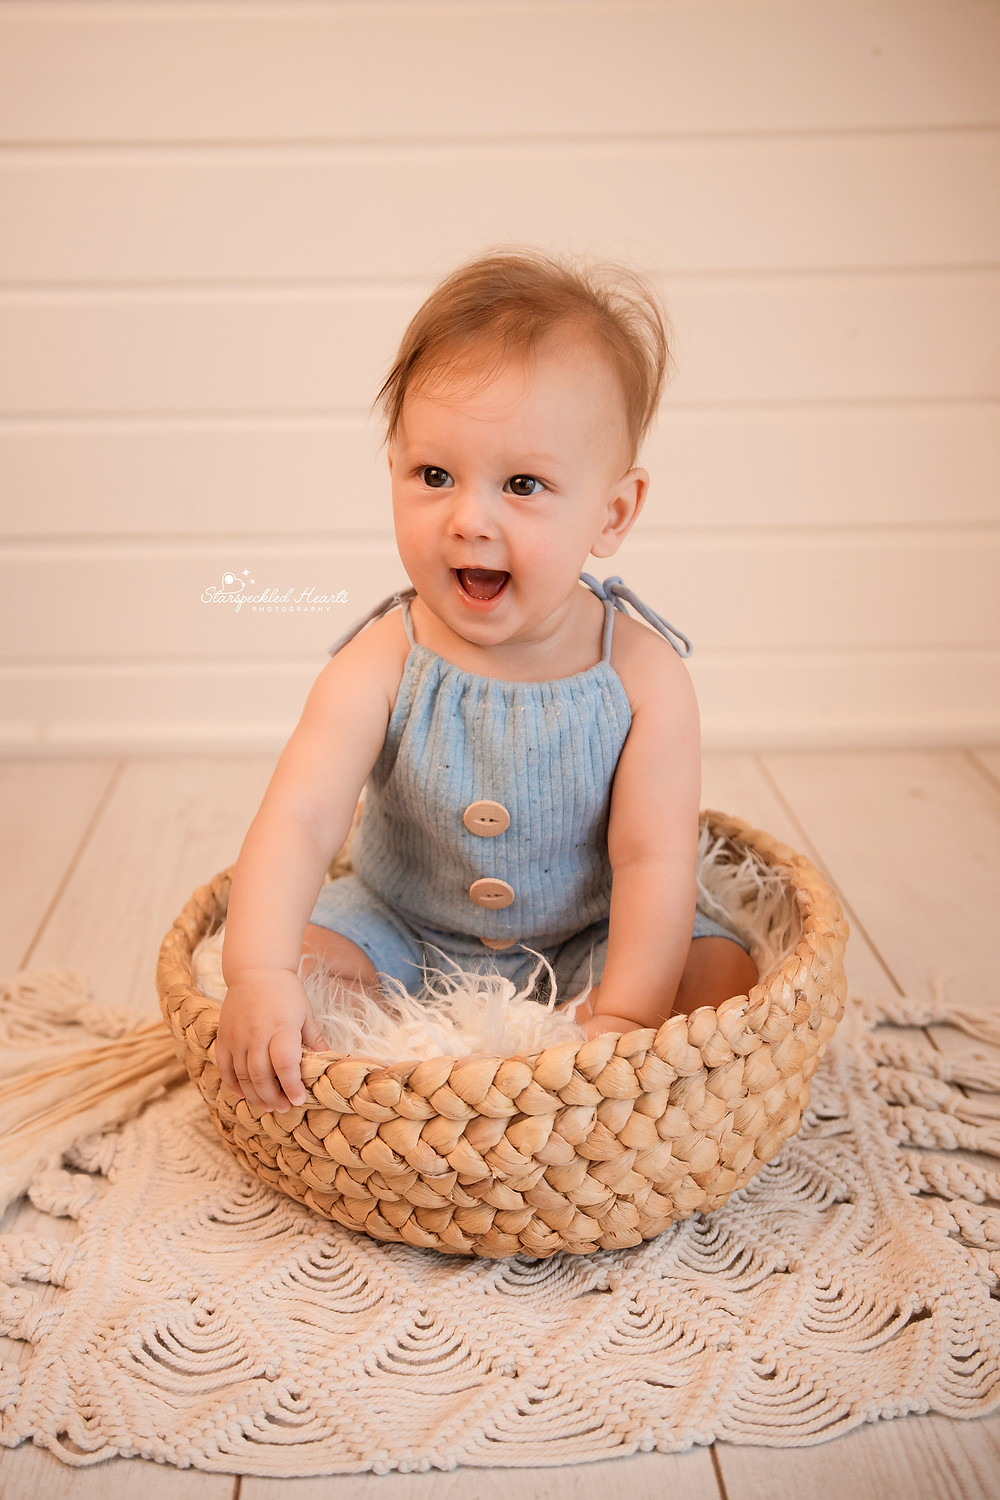 adorable baby boy wearing a blue ribbed romper, sitting in a basket